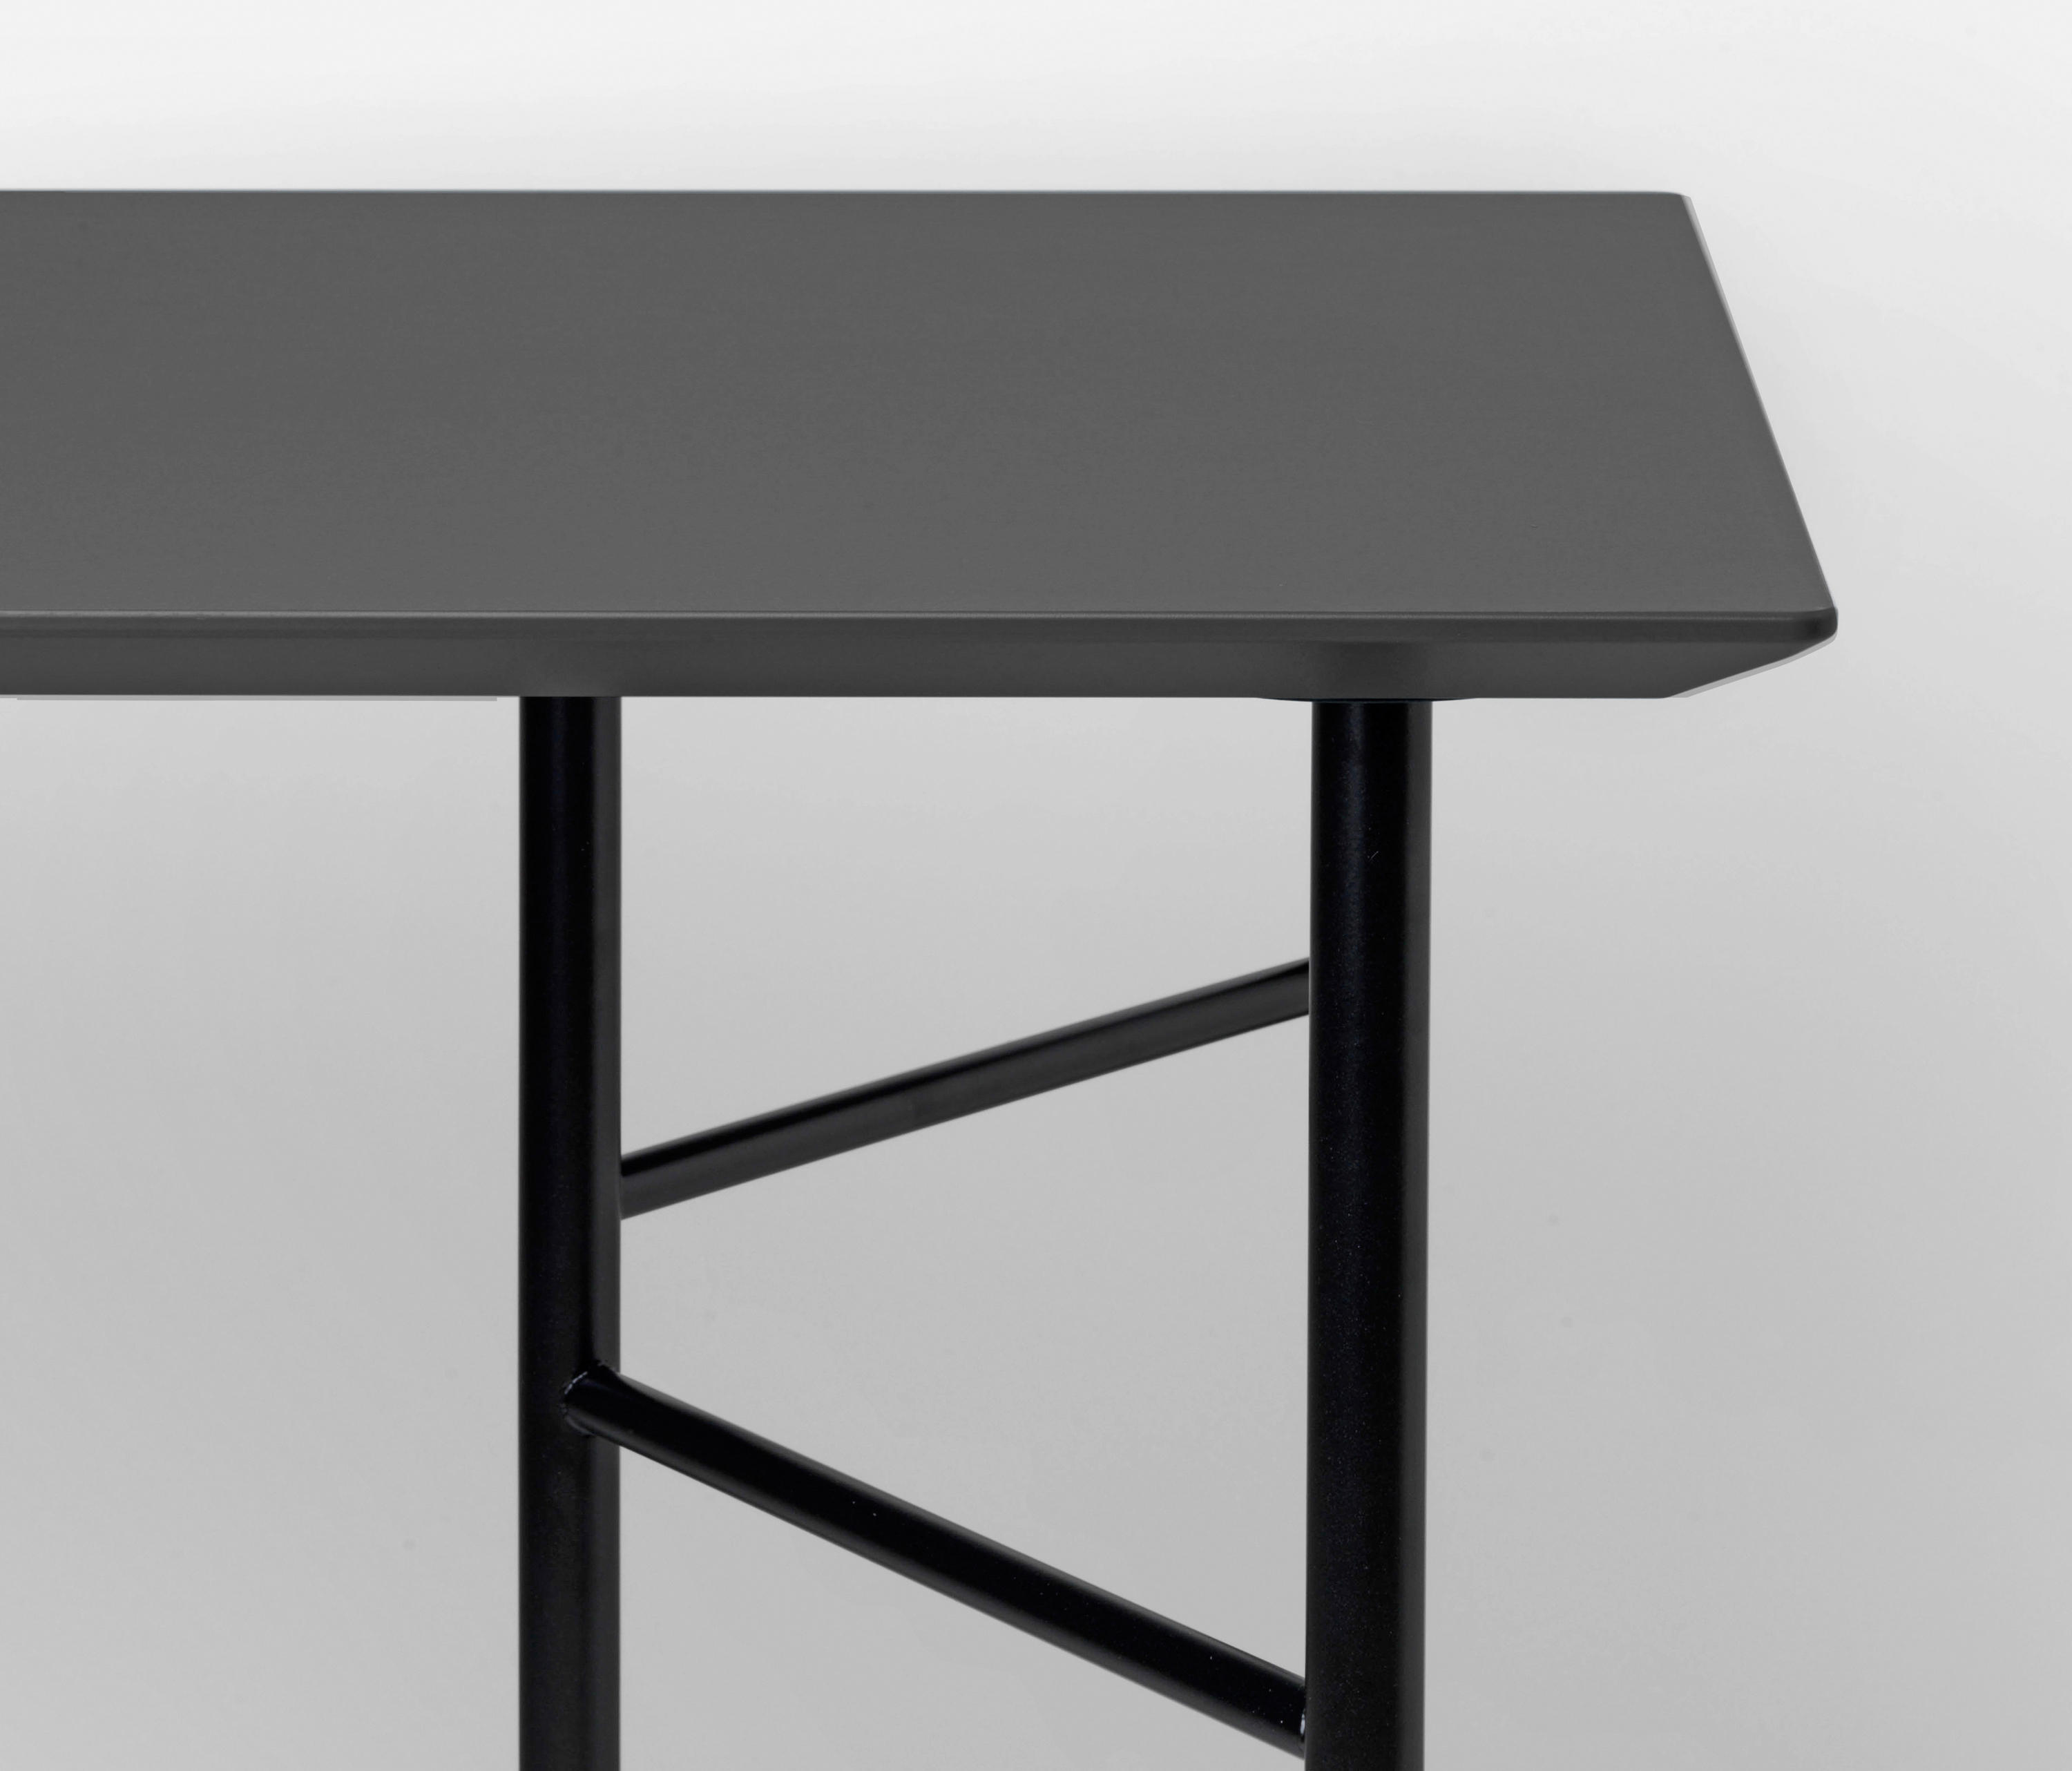 mingle table top charcoal linoleum 135 cm tabletops from ferm living architonic. Black Bedroom Furniture Sets. Home Design Ideas